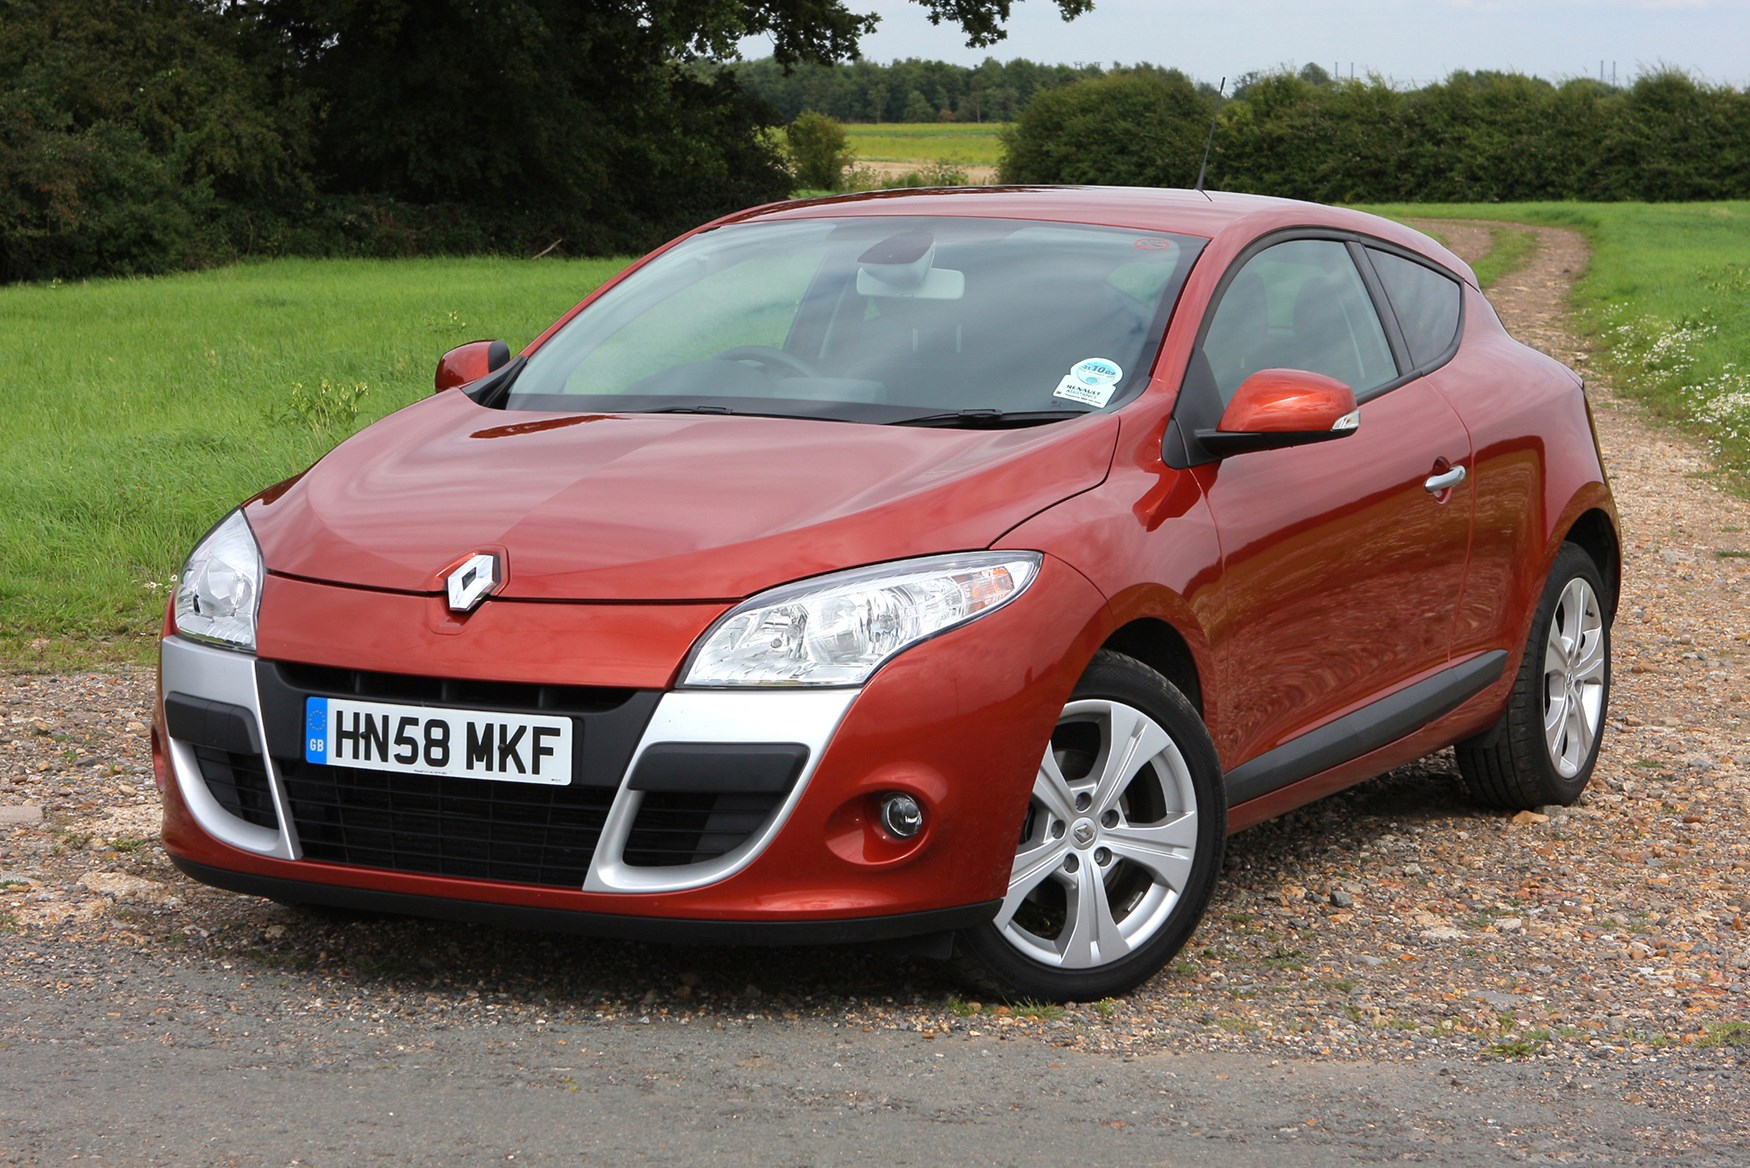 renault megane coupe 2009 2016 features equipment and accessories parkers. Black Bedroom Furniture Sets. Home Design Ideas